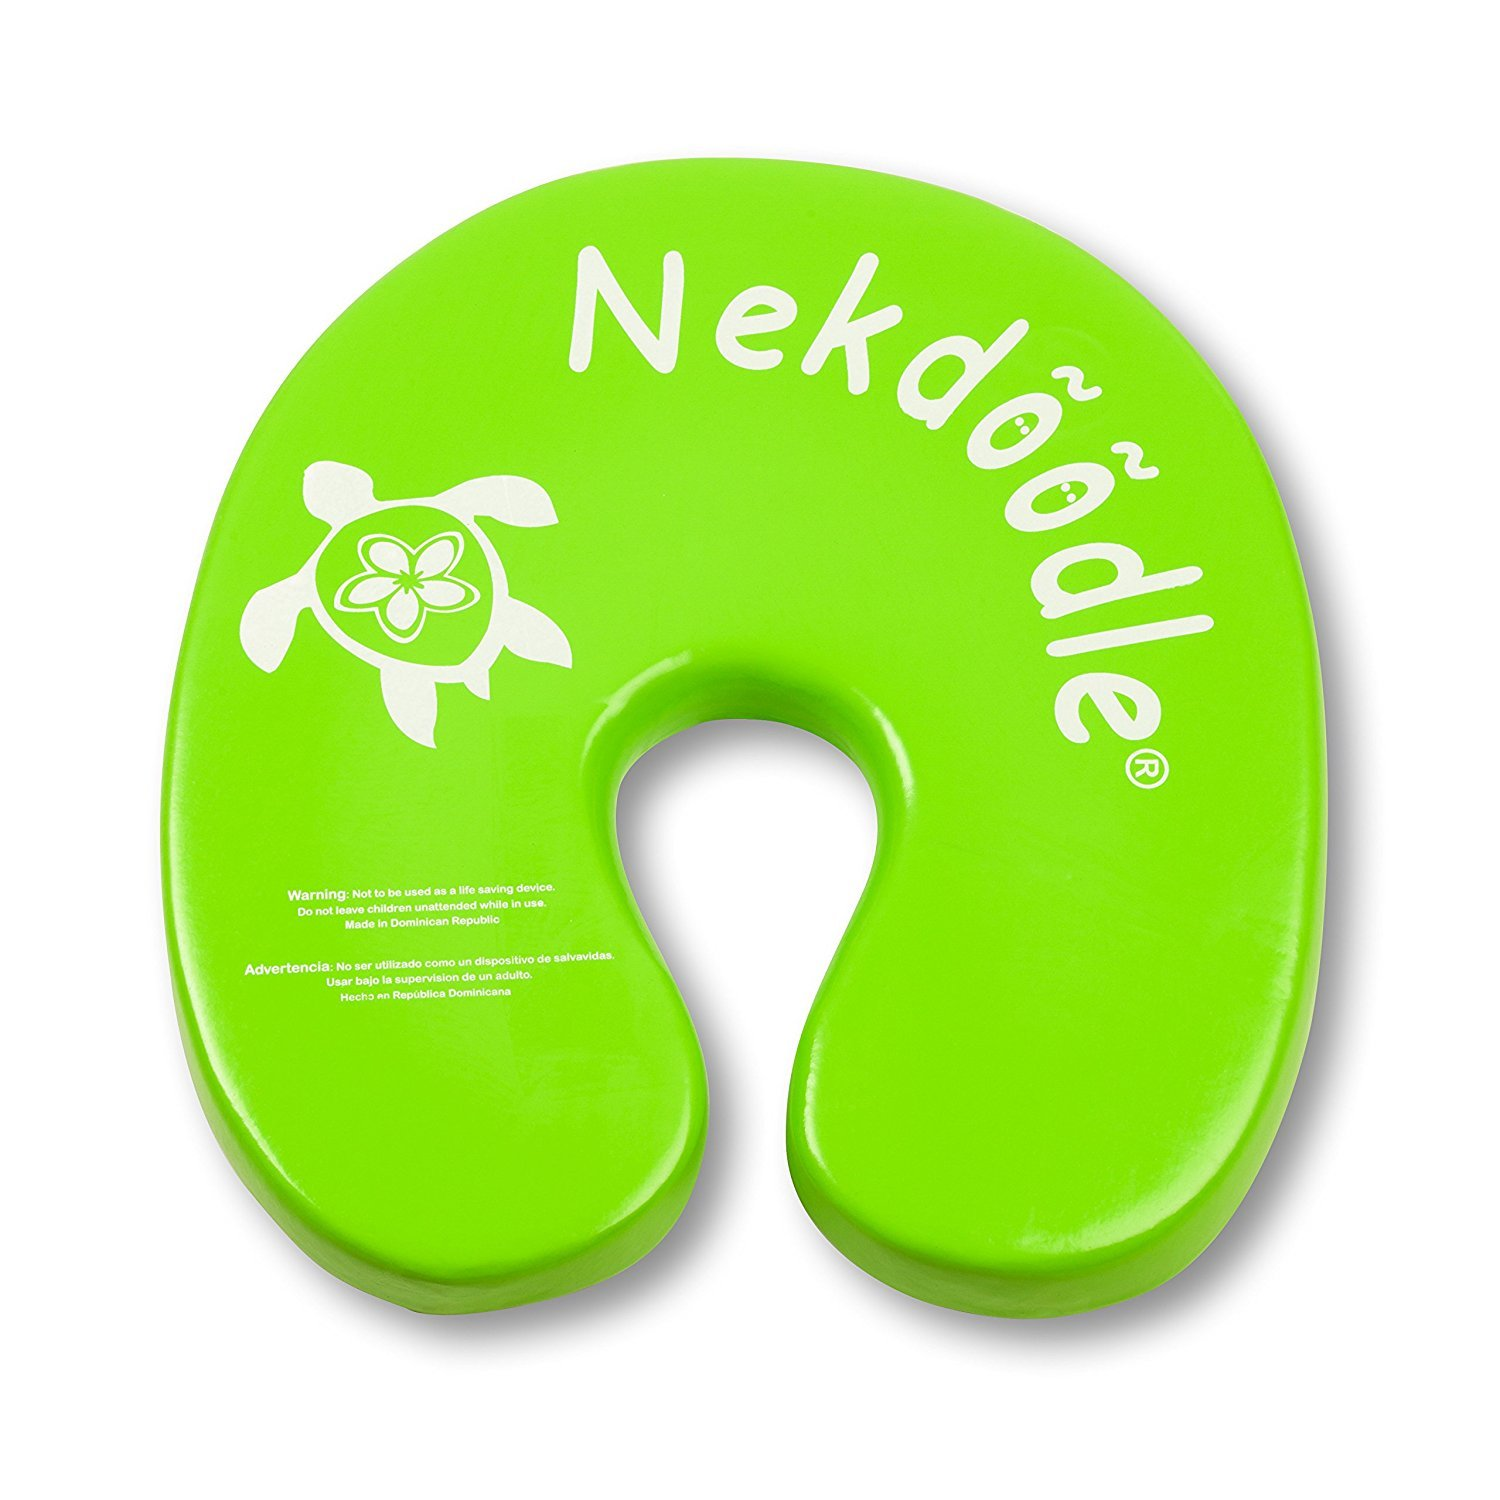 Nekdoodle Swimming Pool Float for Aqua Aerobics & Fitness - Water Training & Exercises - Fun & Recreational Pool Toy - Fits Adults and Kids - Lime Green Sea ...